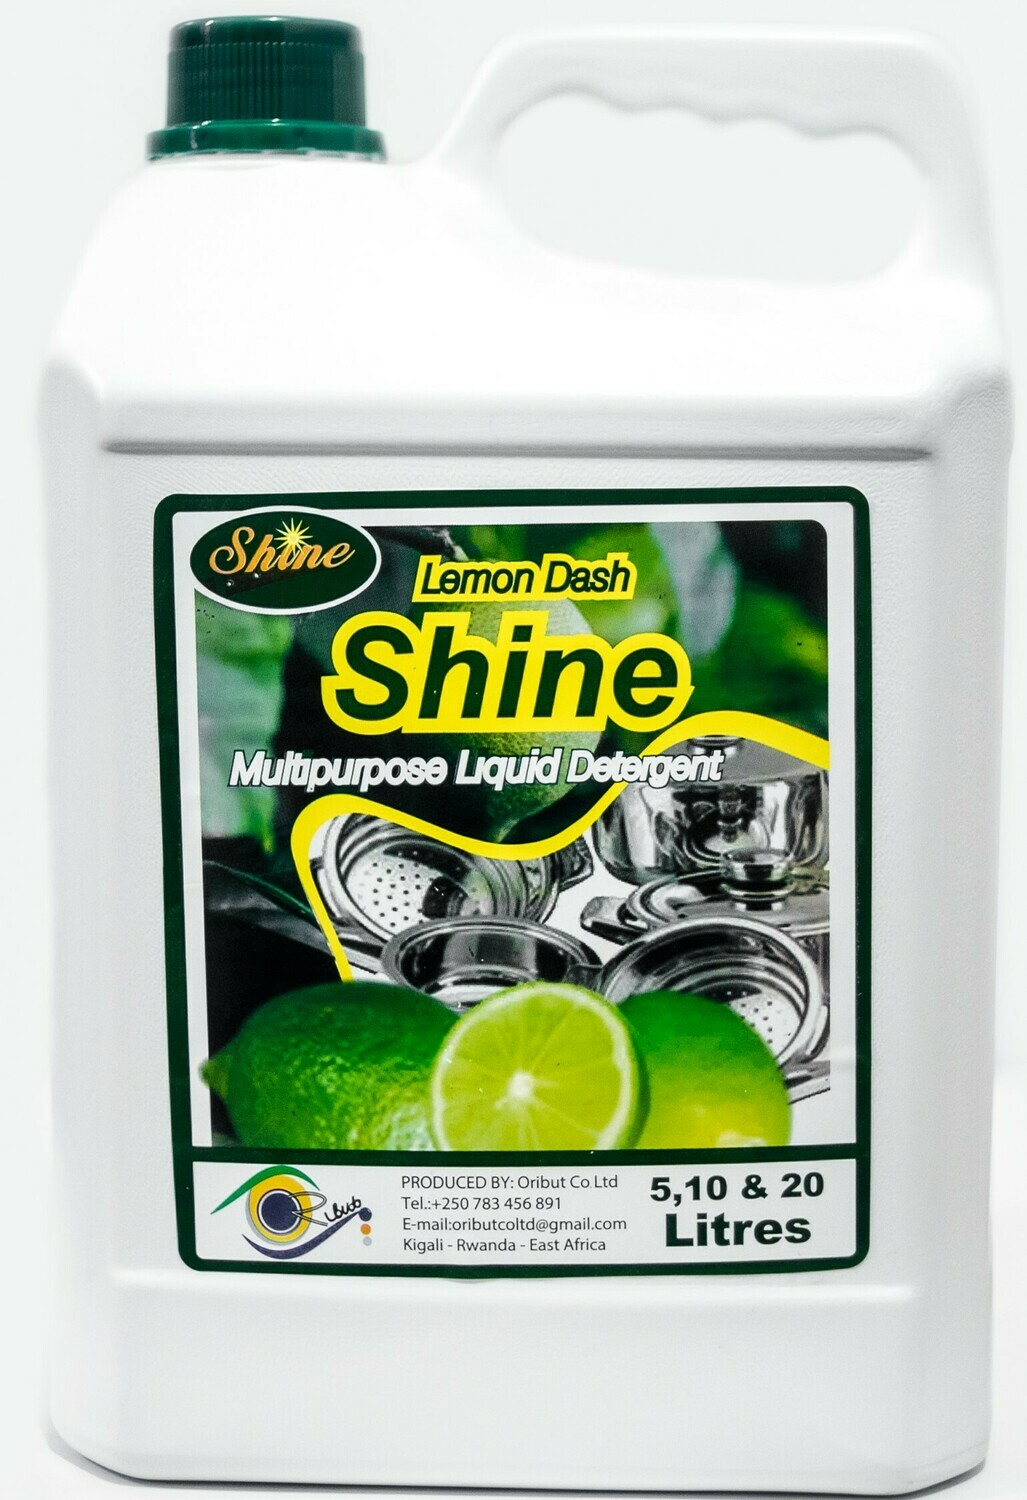 Shine Multipurpose Liquid Detergent